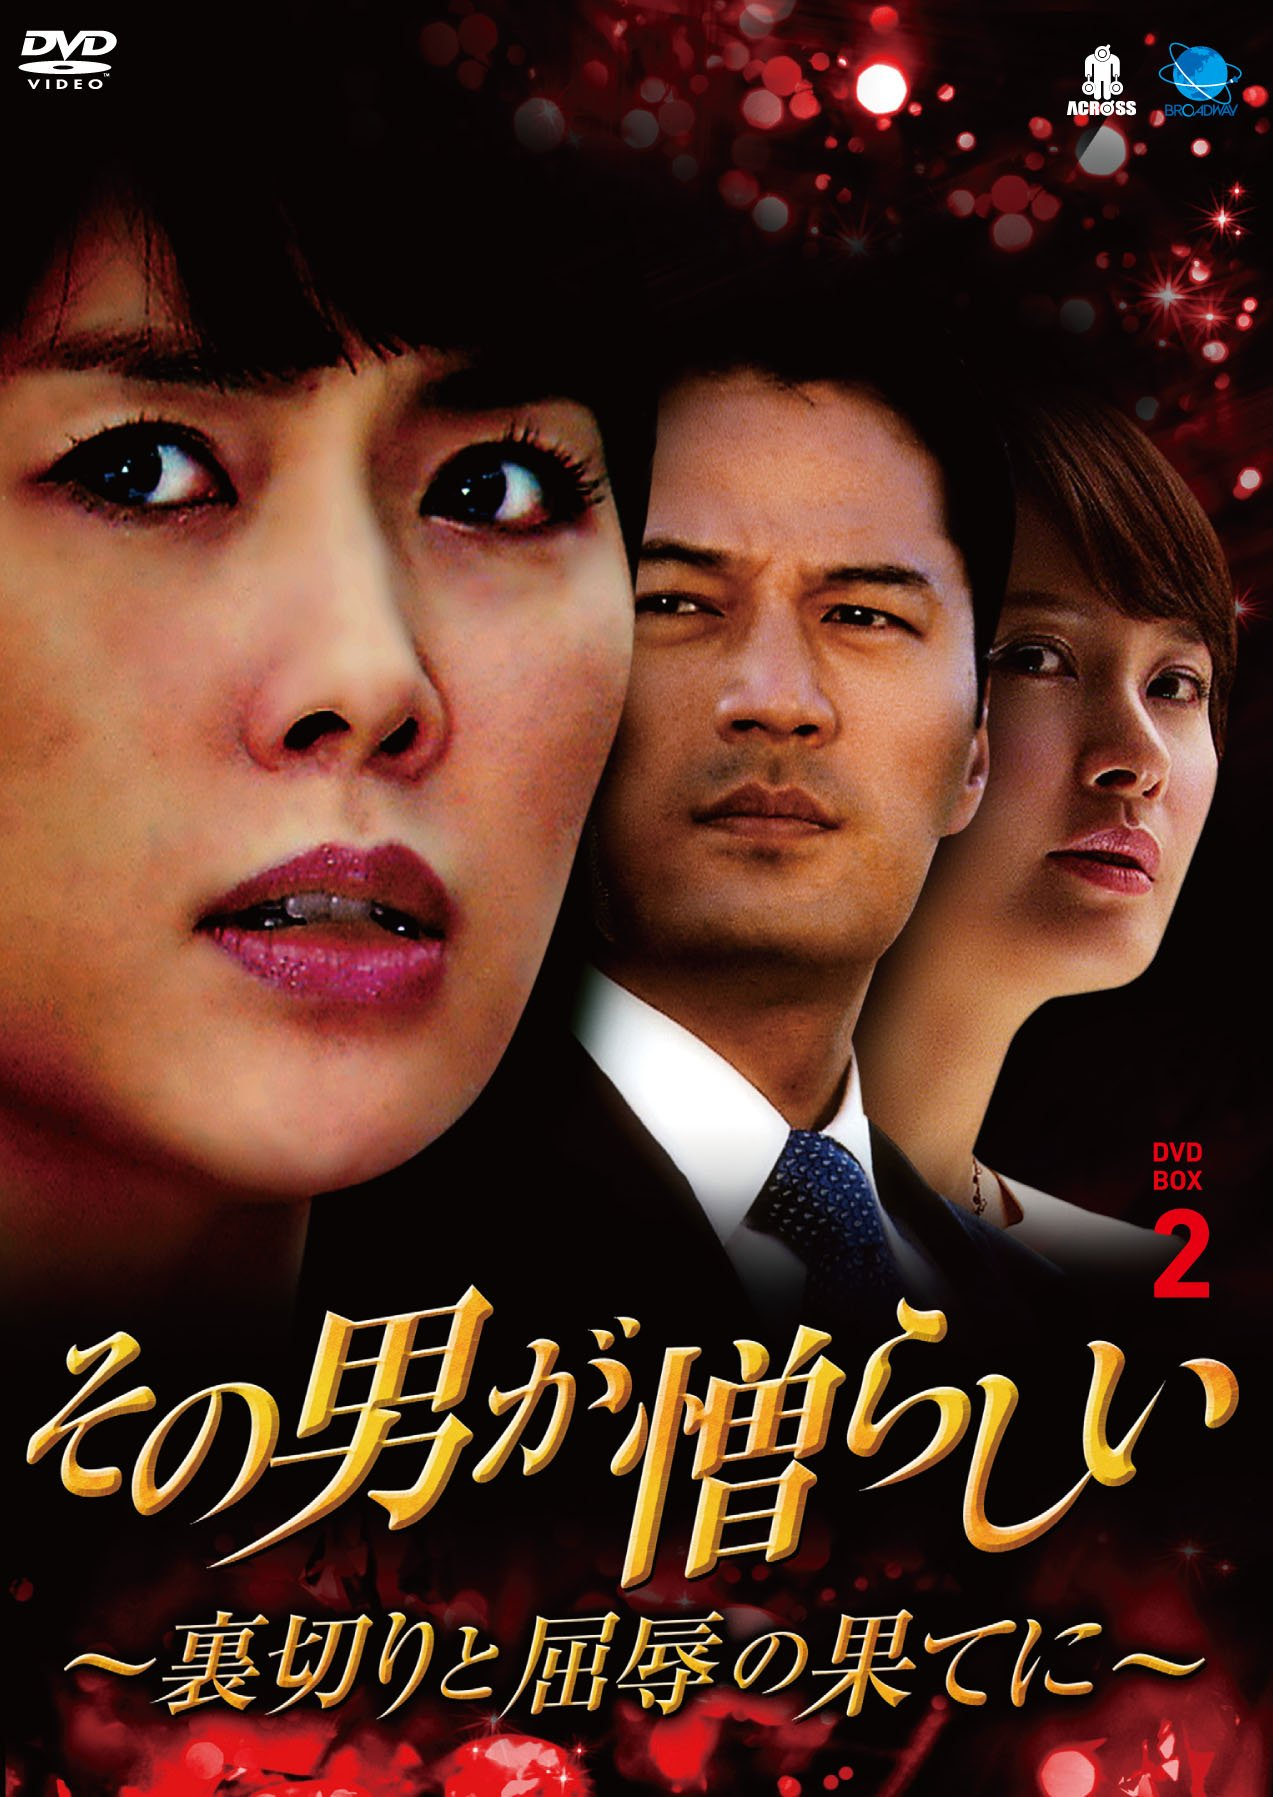 Foreign TV - The Man At The End Odious Betrayal And Humiliation DVD Box 2 (5DVDS) [Japan DVD] BWD-2401 by